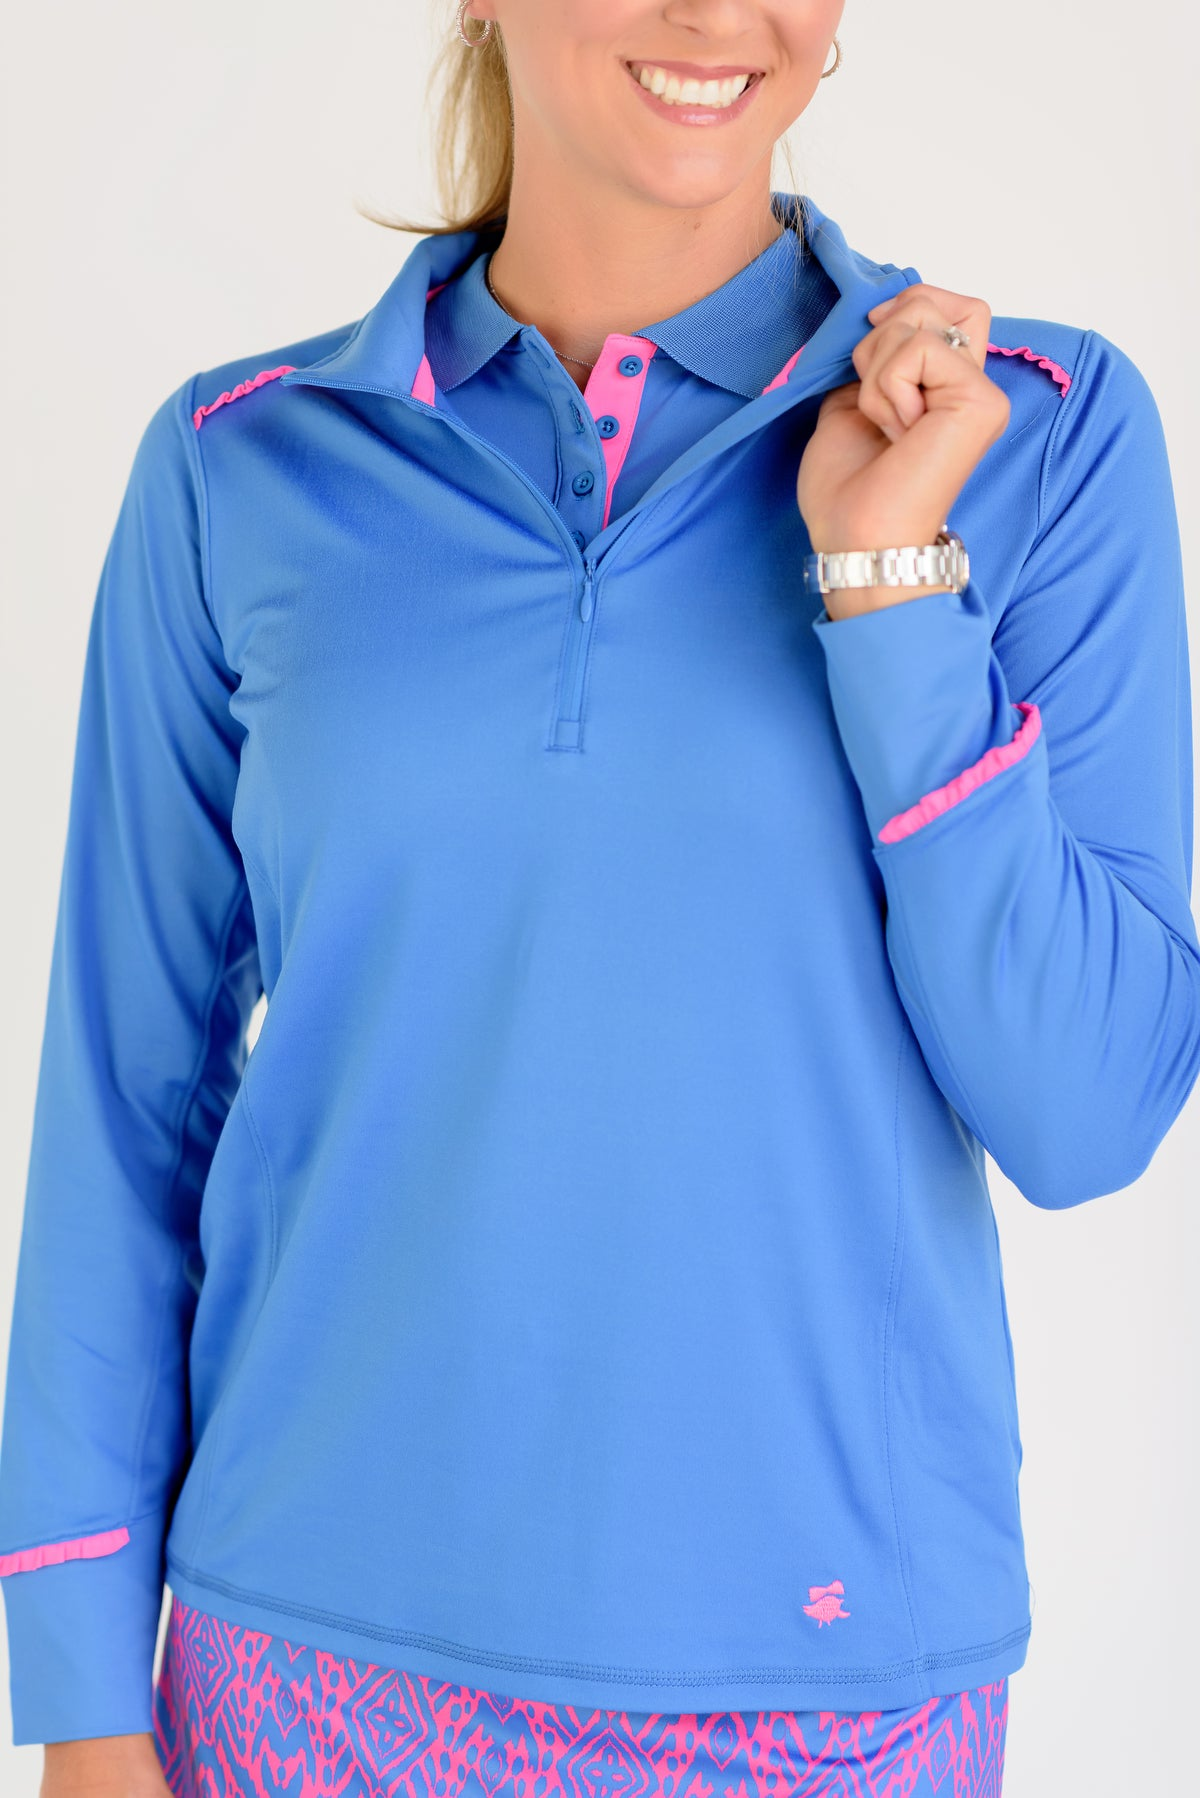 Even Par Quarter Zip Medium Blue with Pink Trim Front View